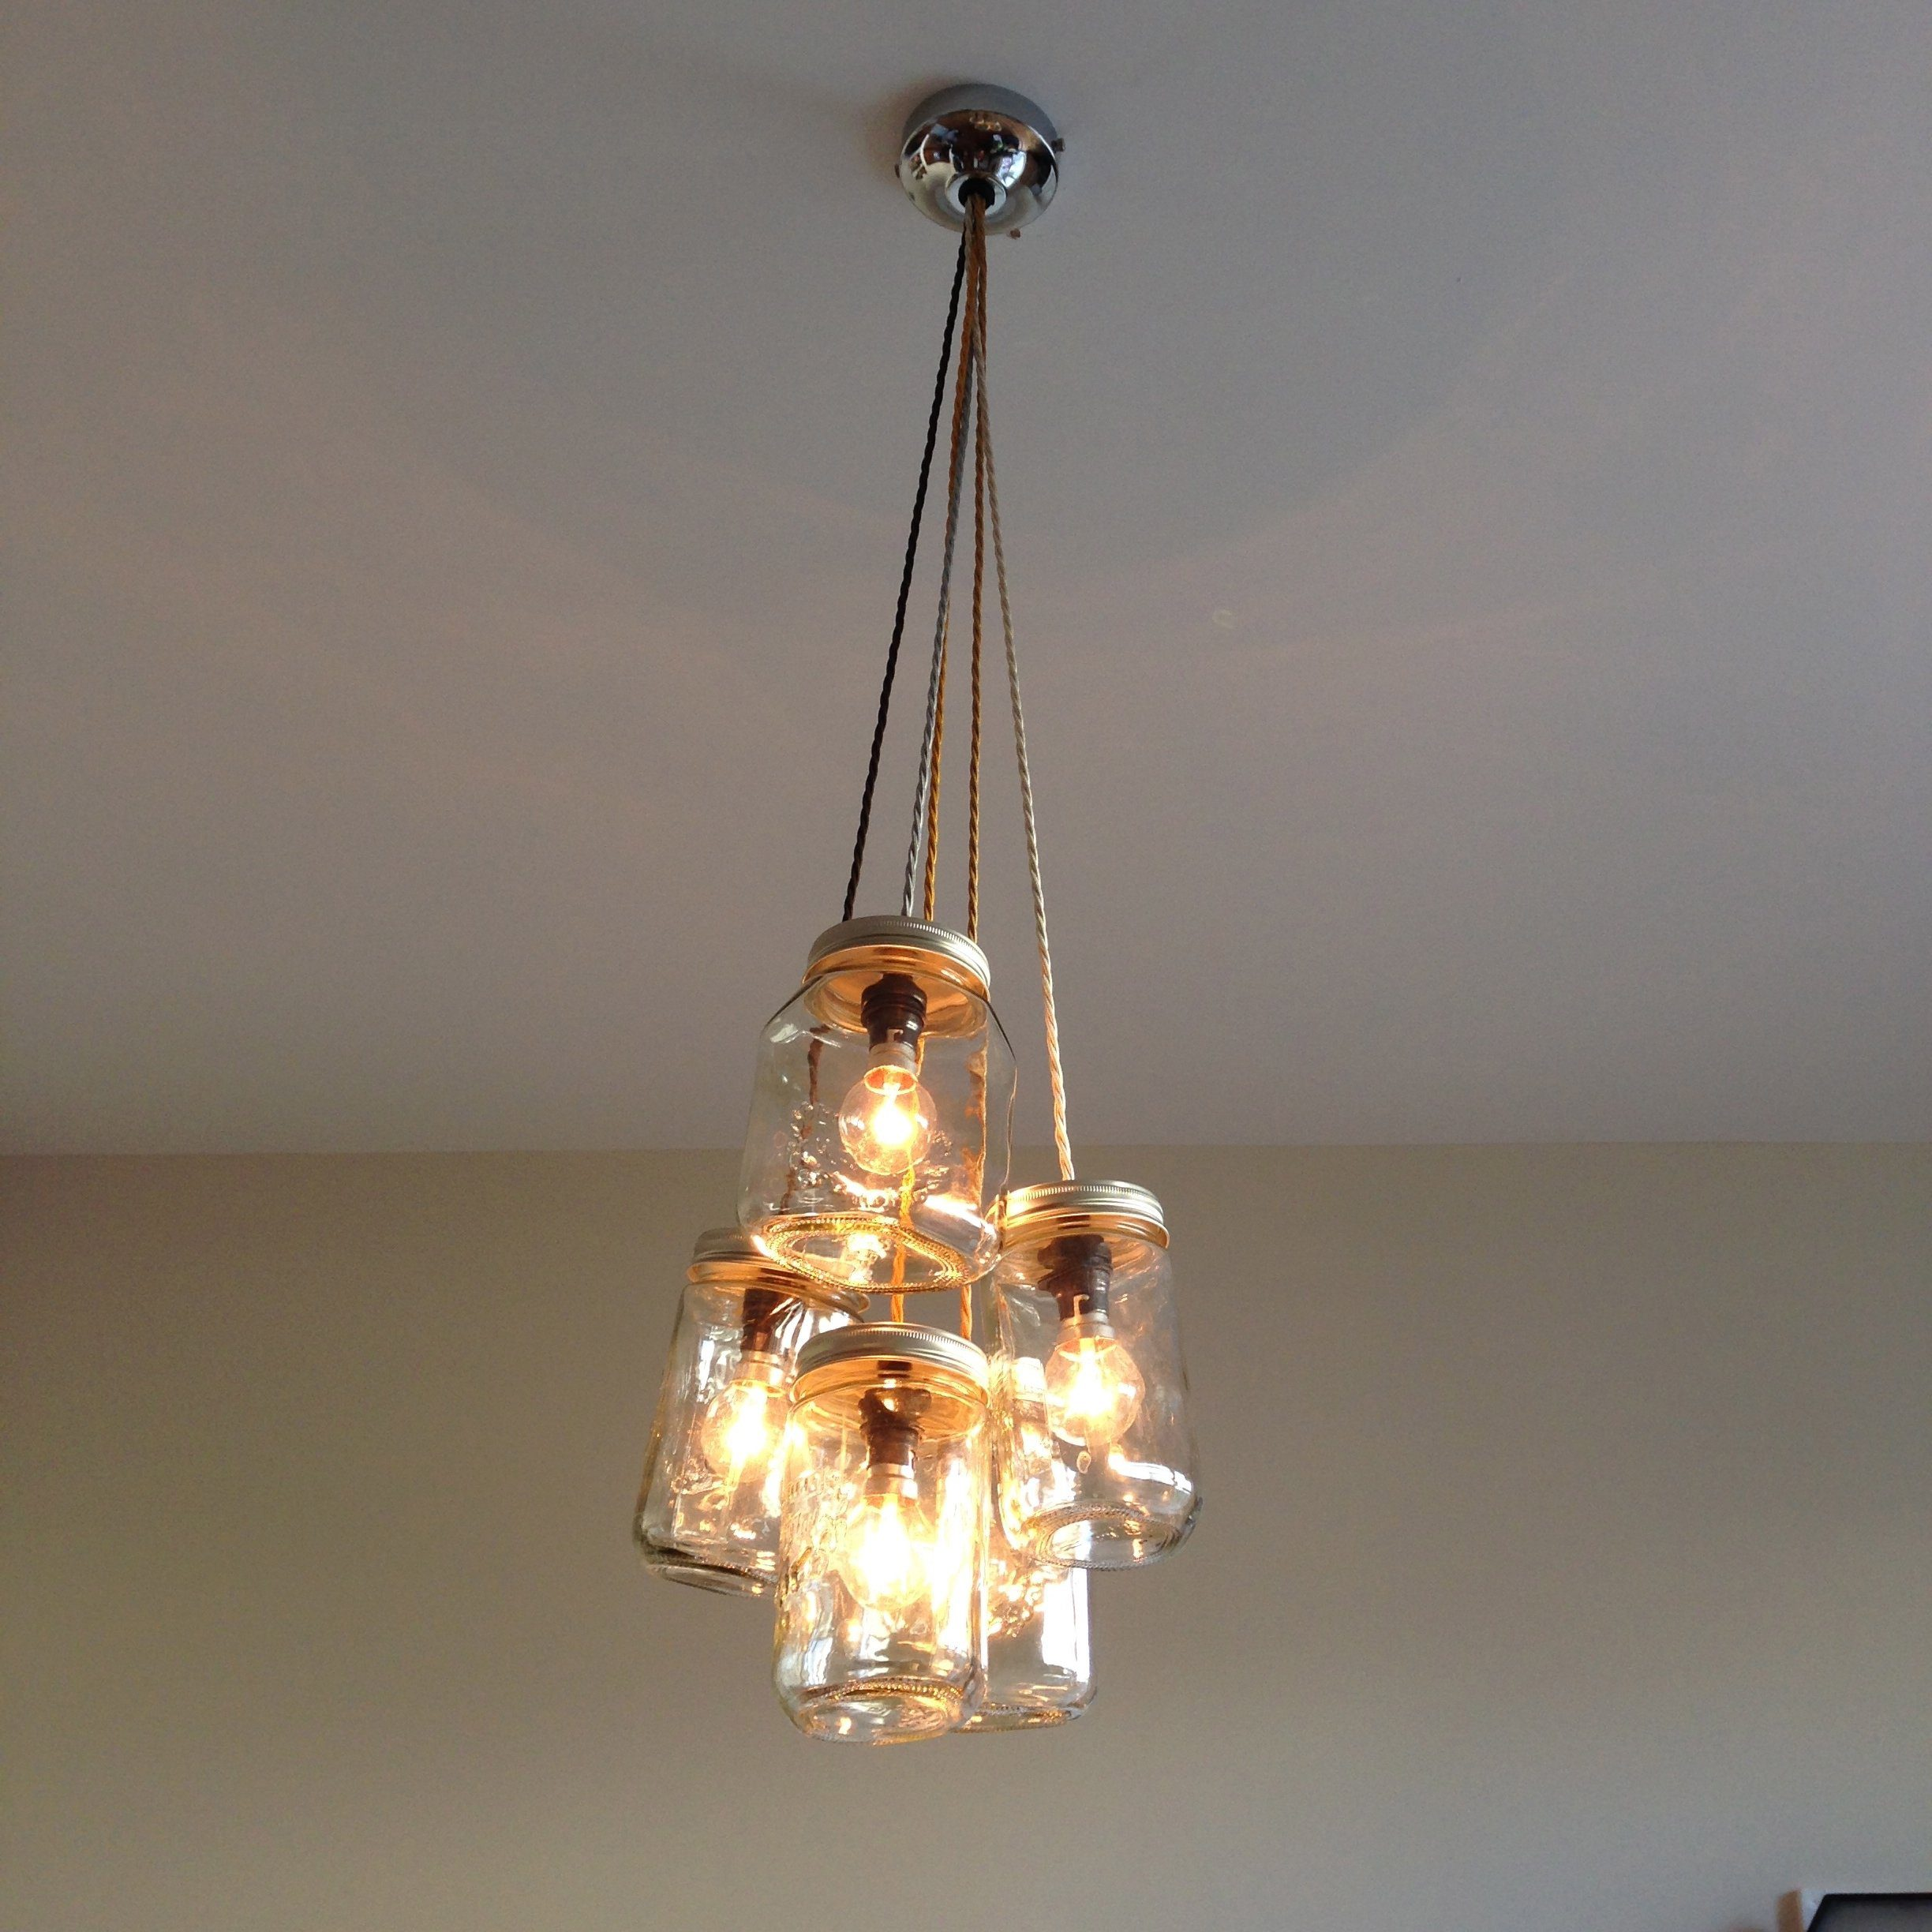 Captivating The Salvage Sister On Channel 4 Jam Jar Chandelier On Fill Your House For  Free